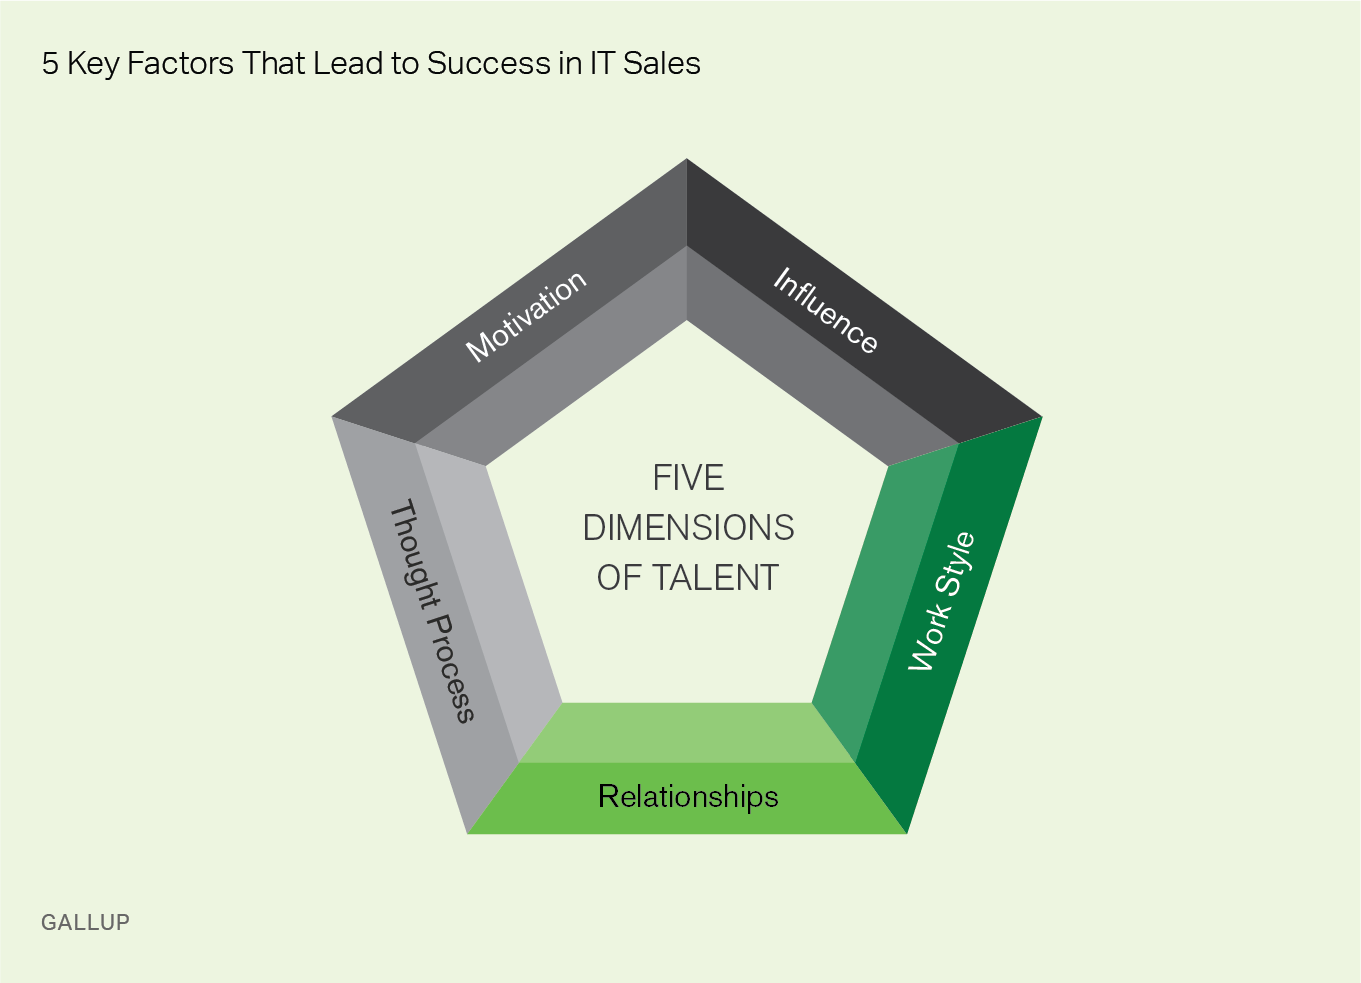 5 Key Factors That Lead to Success in IT Sales